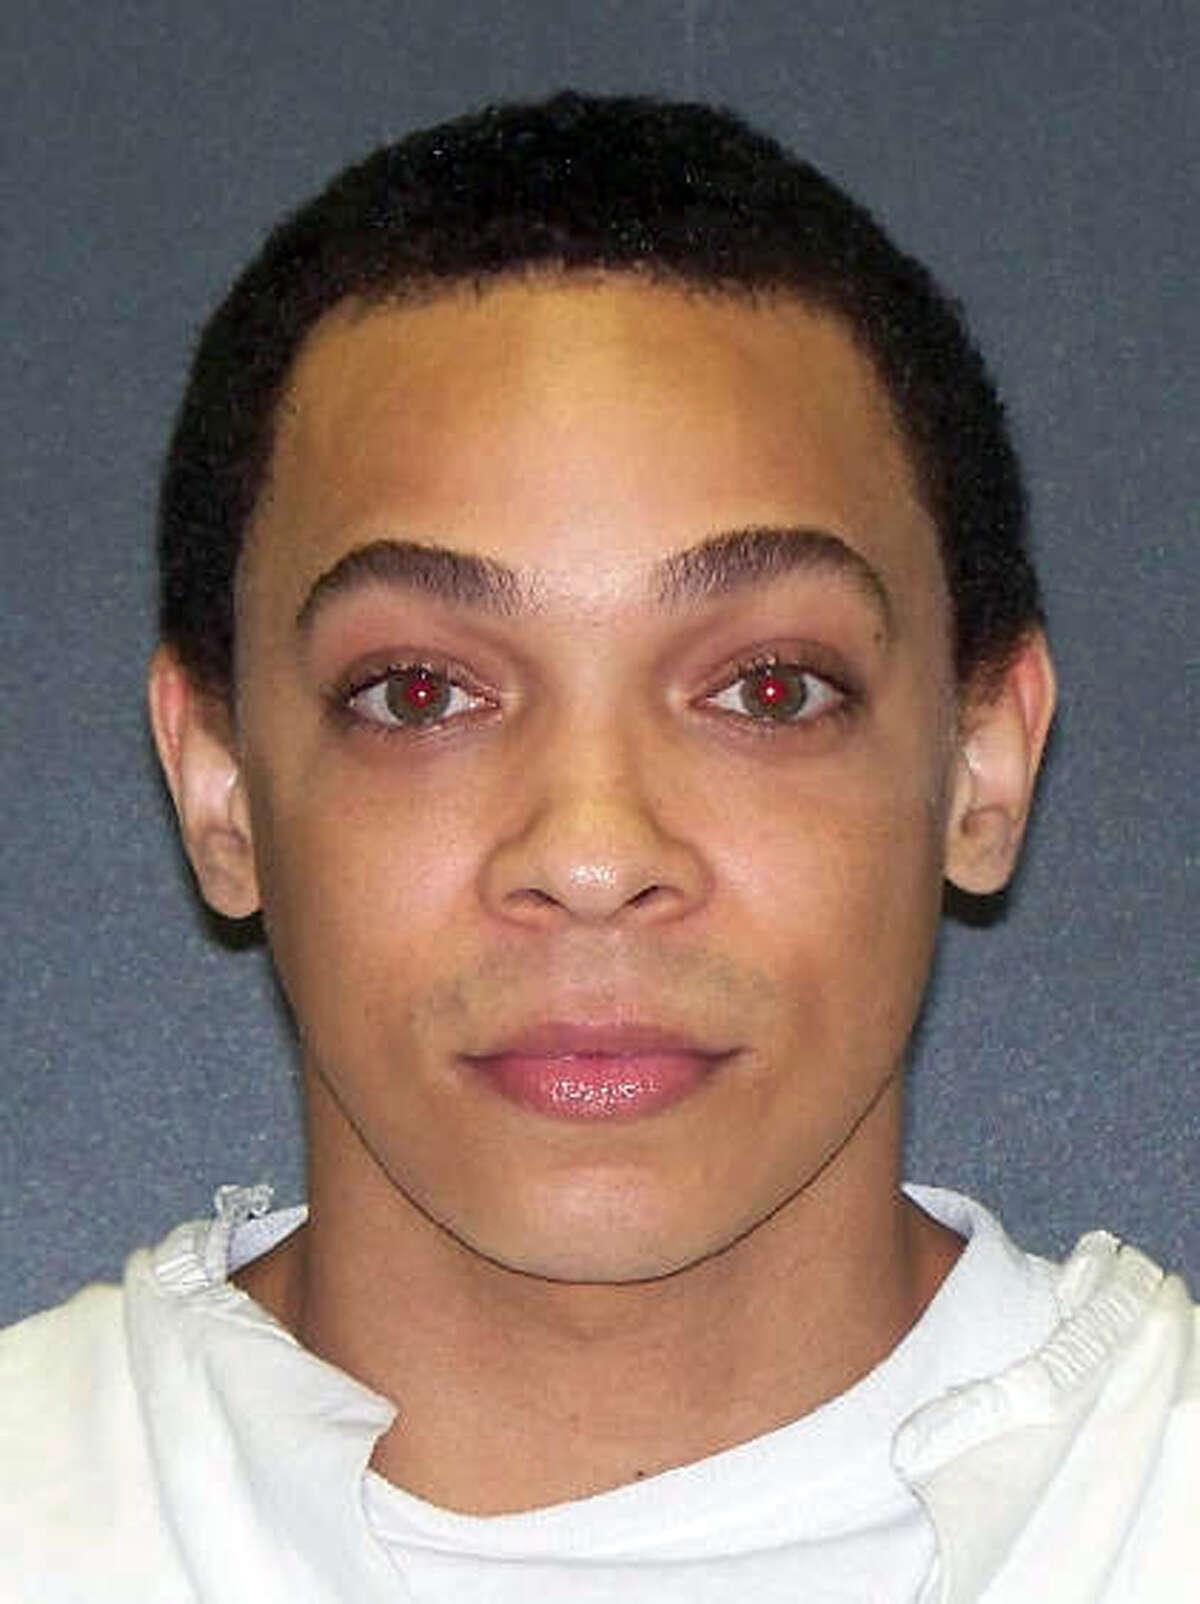 PHOTOS: The executed in Texas This photo provided by the Texas Department of Criminal Justice shows Anthony Haynes. Haynes, 33, is scheduled to be executed Thursday, Oct. 18. 2012 for killing an off duty Houston police sergeant in May 1998. >>See which inmates have been executed this year in the photos that follow...